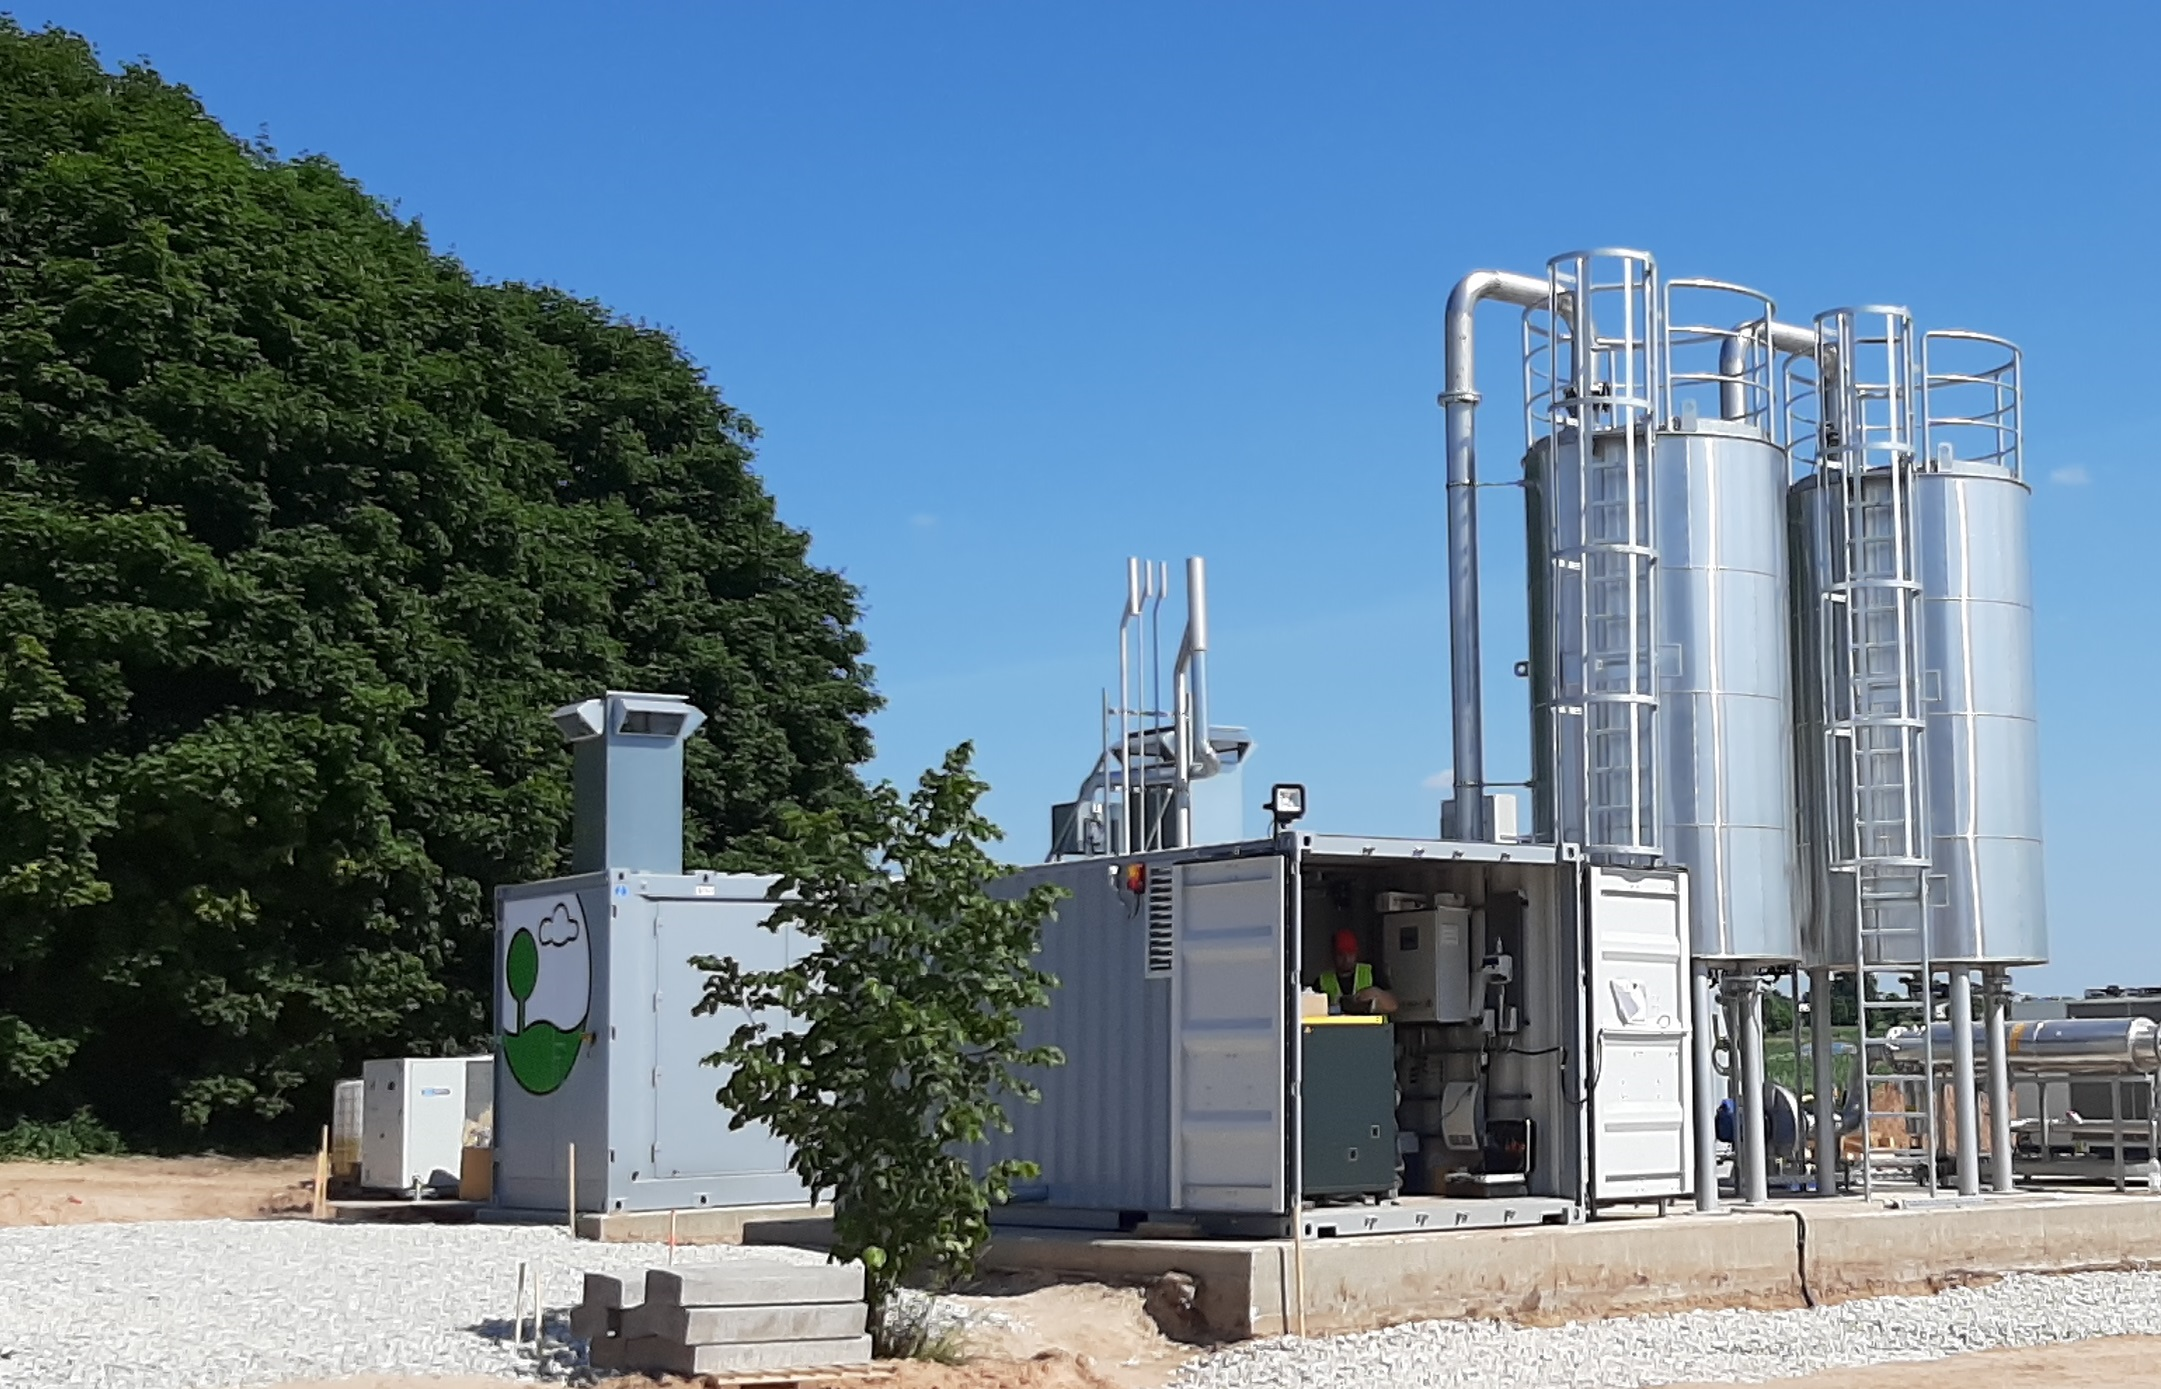 Only 6 months after order placement the EnviThan gas upgrading plant feeds biomethane into the estonian gas grid.